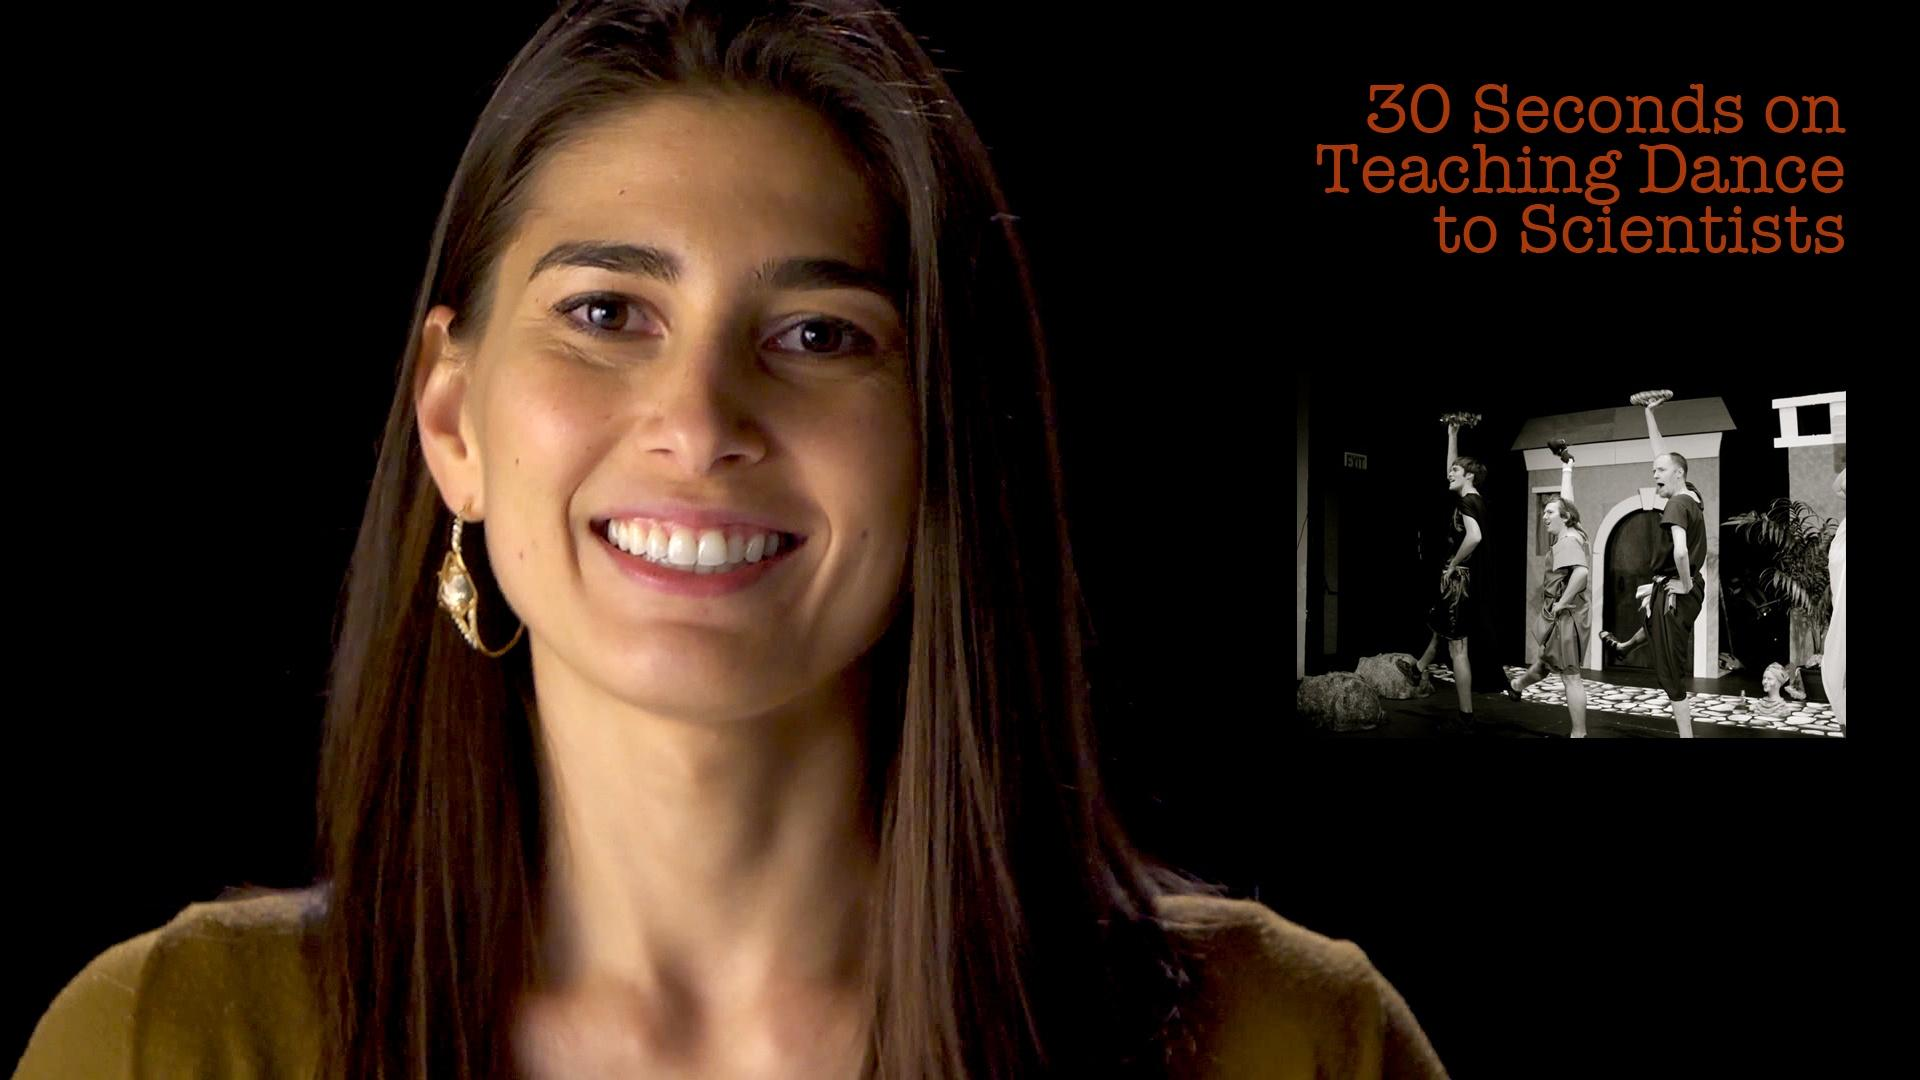 Crystal Dilworth: 30 Seconds on Teaching Dance to Scientists image